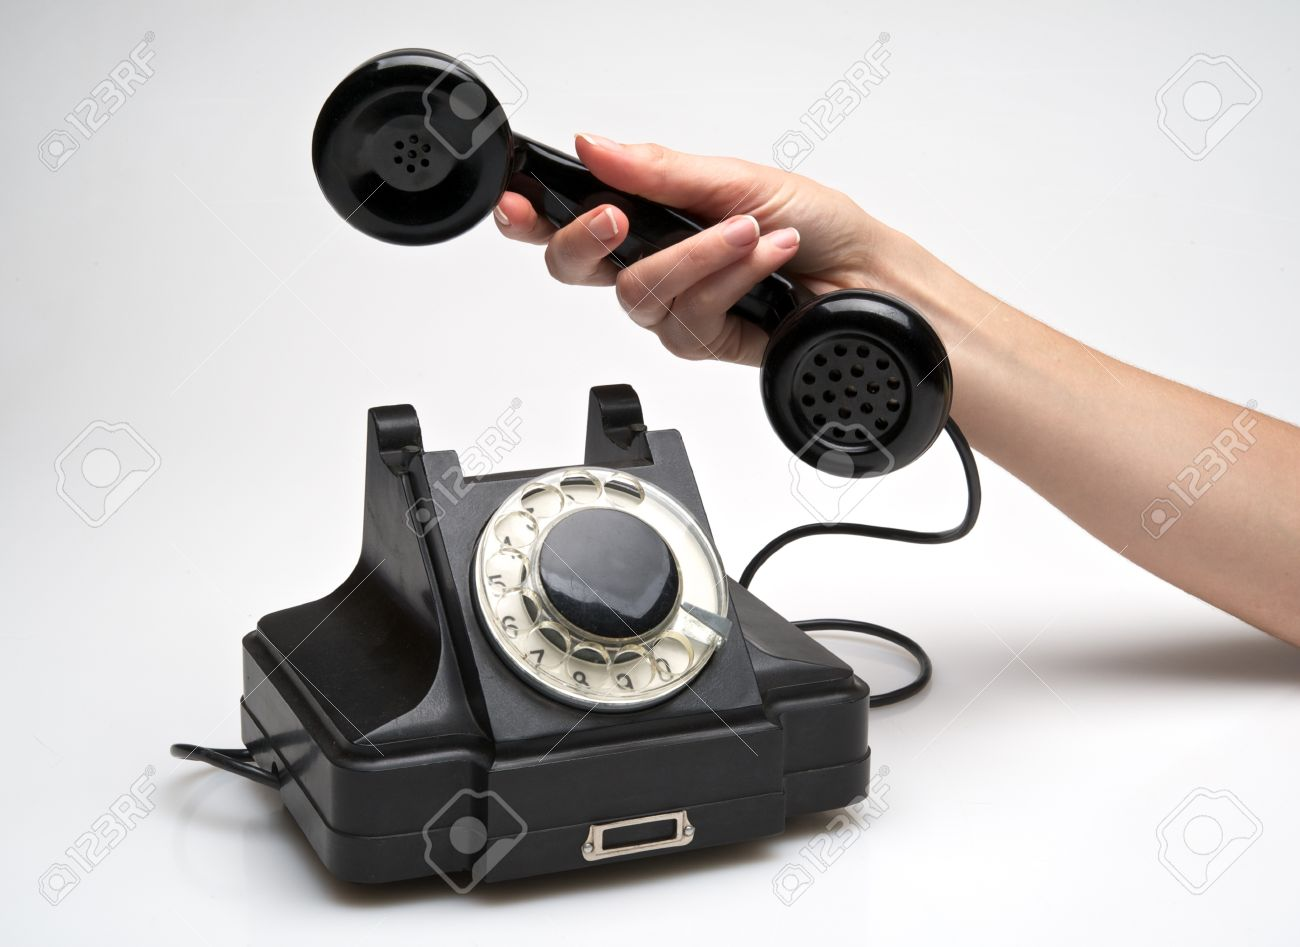 woman hand hanging up the handset of an old black telephone isolated ocer white background Stock Photo - 10126830